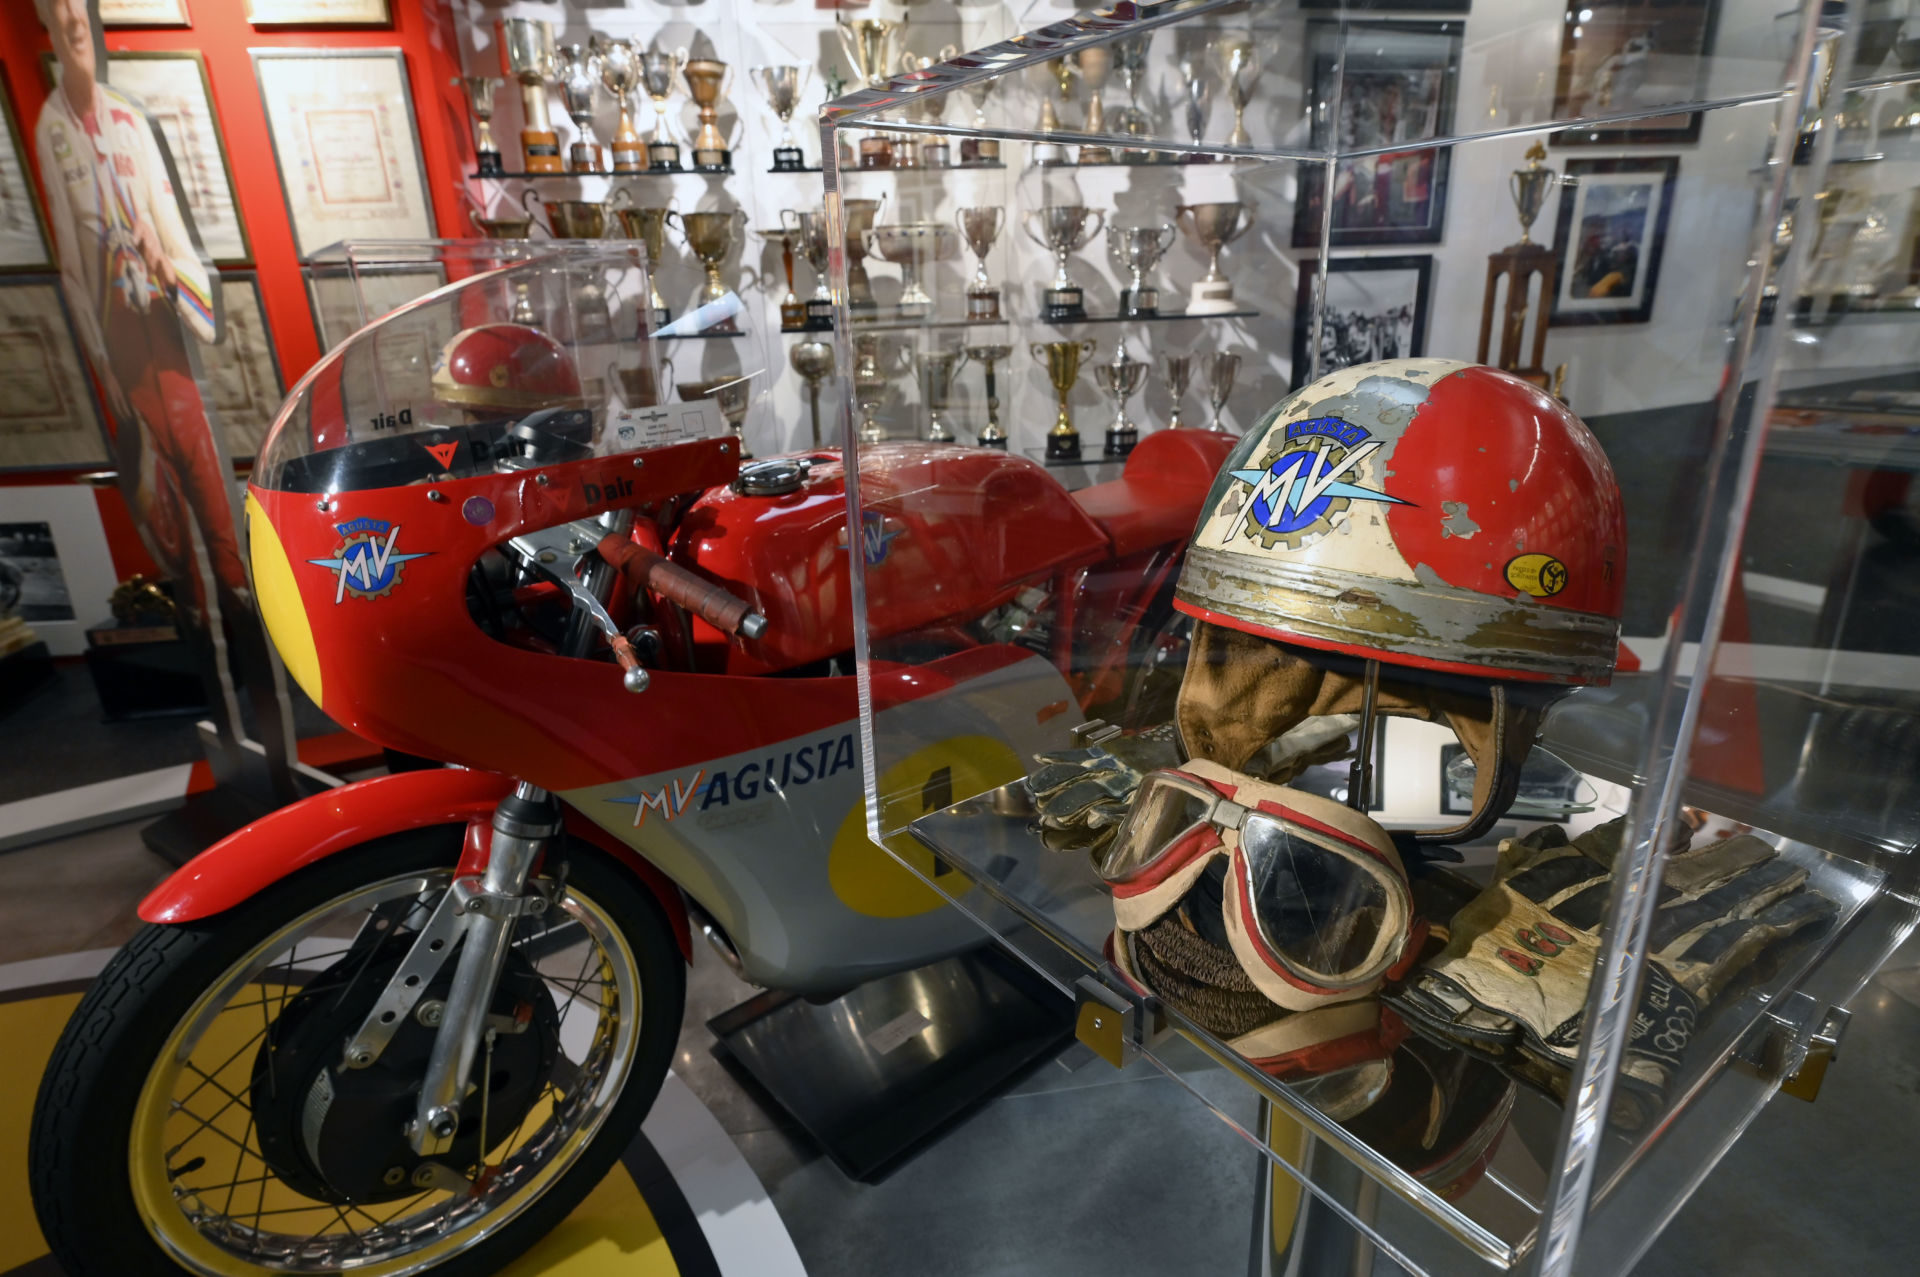 A private museum celebrating the career of Giacomo Agostini is now open by appointment only. Photo courtesy of MV Agusta.